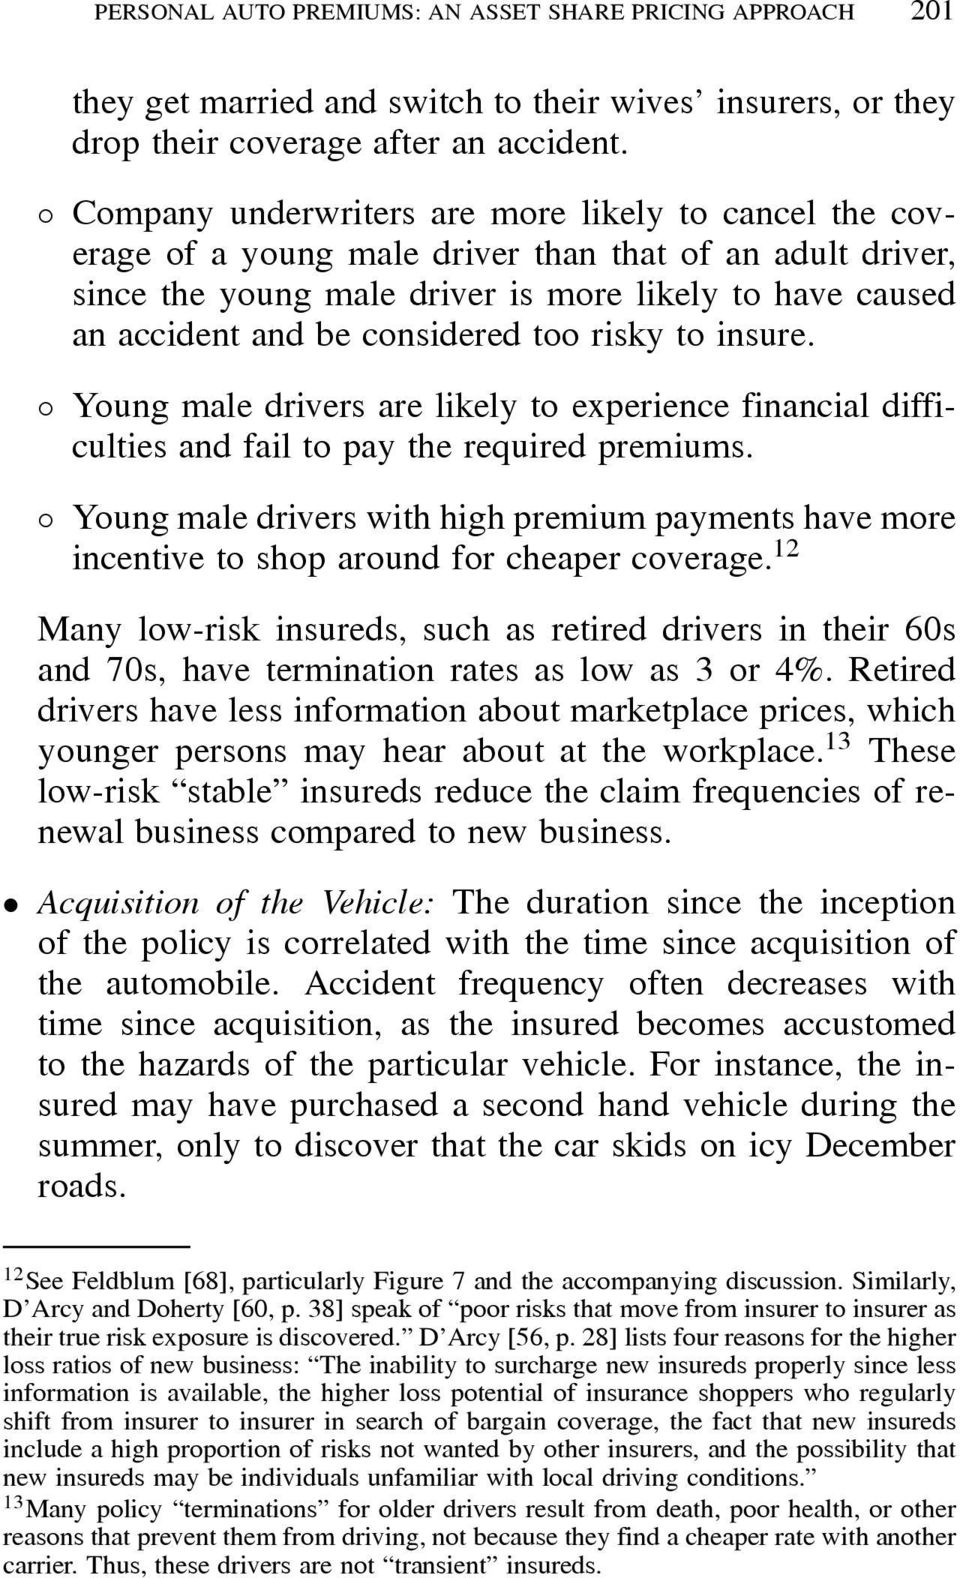 considered too risky to insure. ± Young male drivers are likely to experience financial difficulties and fail to pay the required premiums.